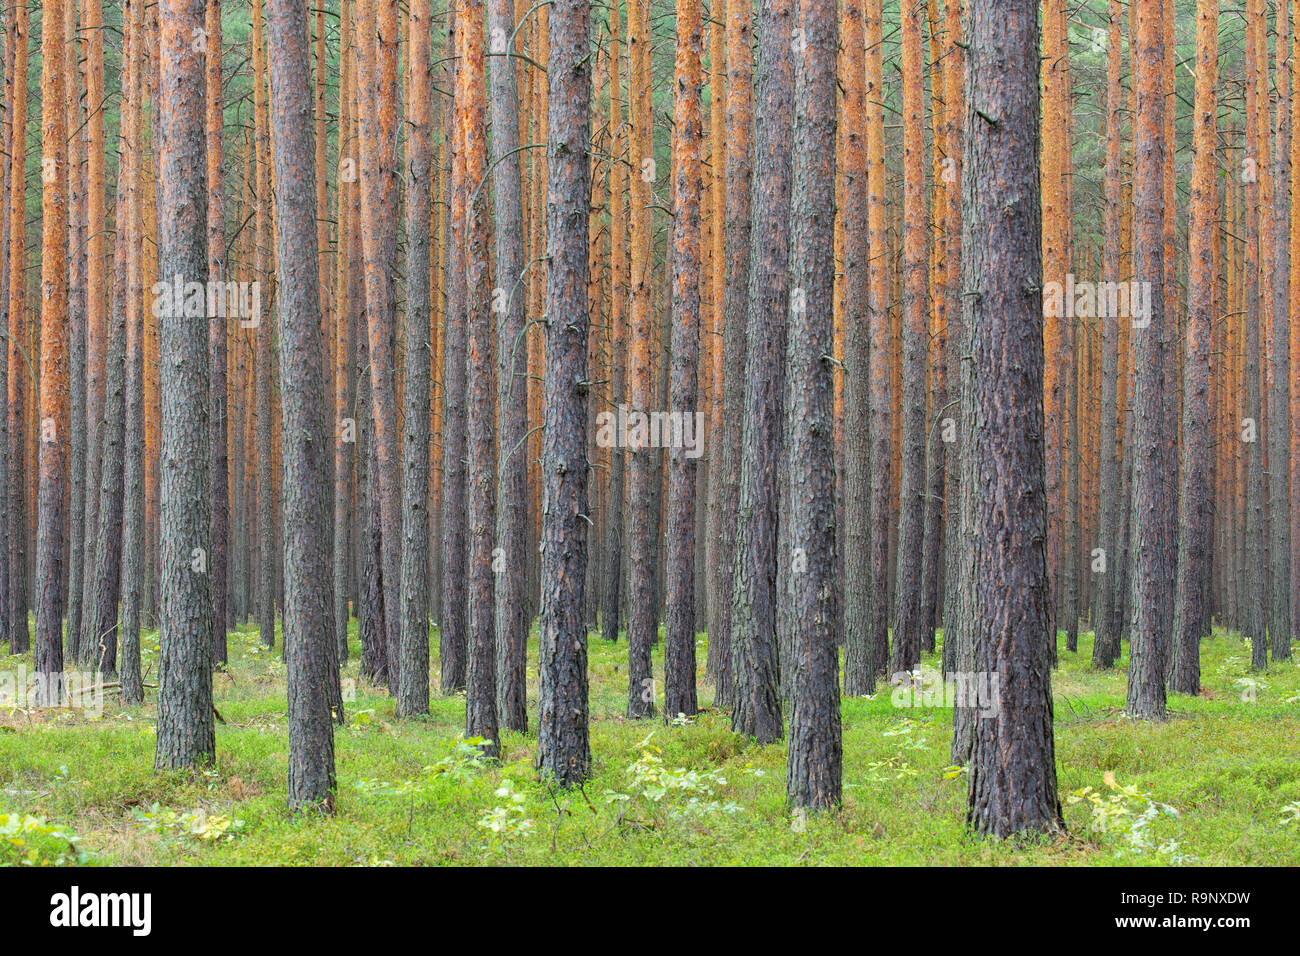 Scots Pine (Pinus sylvestris) tree trunks in coniferous forest Stock Photo